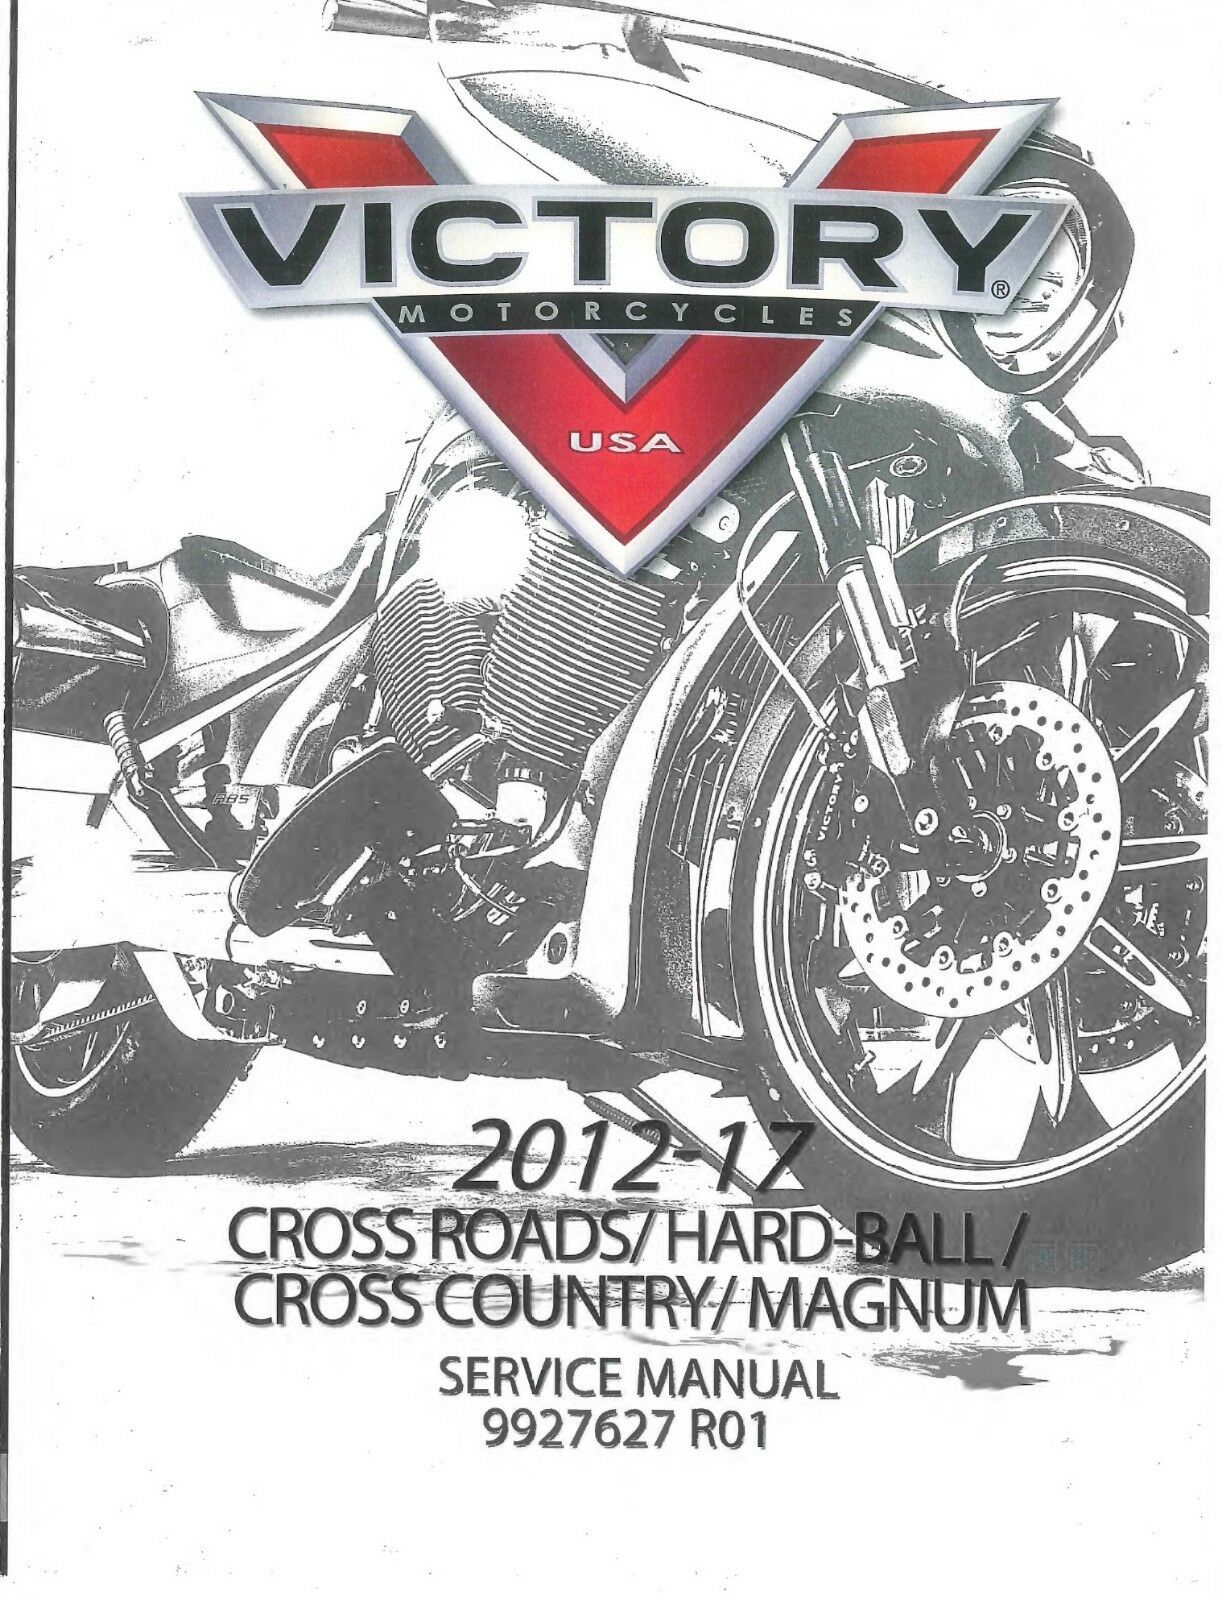 victory cross country 2012 2013 2014 2015 2016 2017 service manual rh picclick com victory cross country service manual 2013 2010 victory cross country service manual pdf